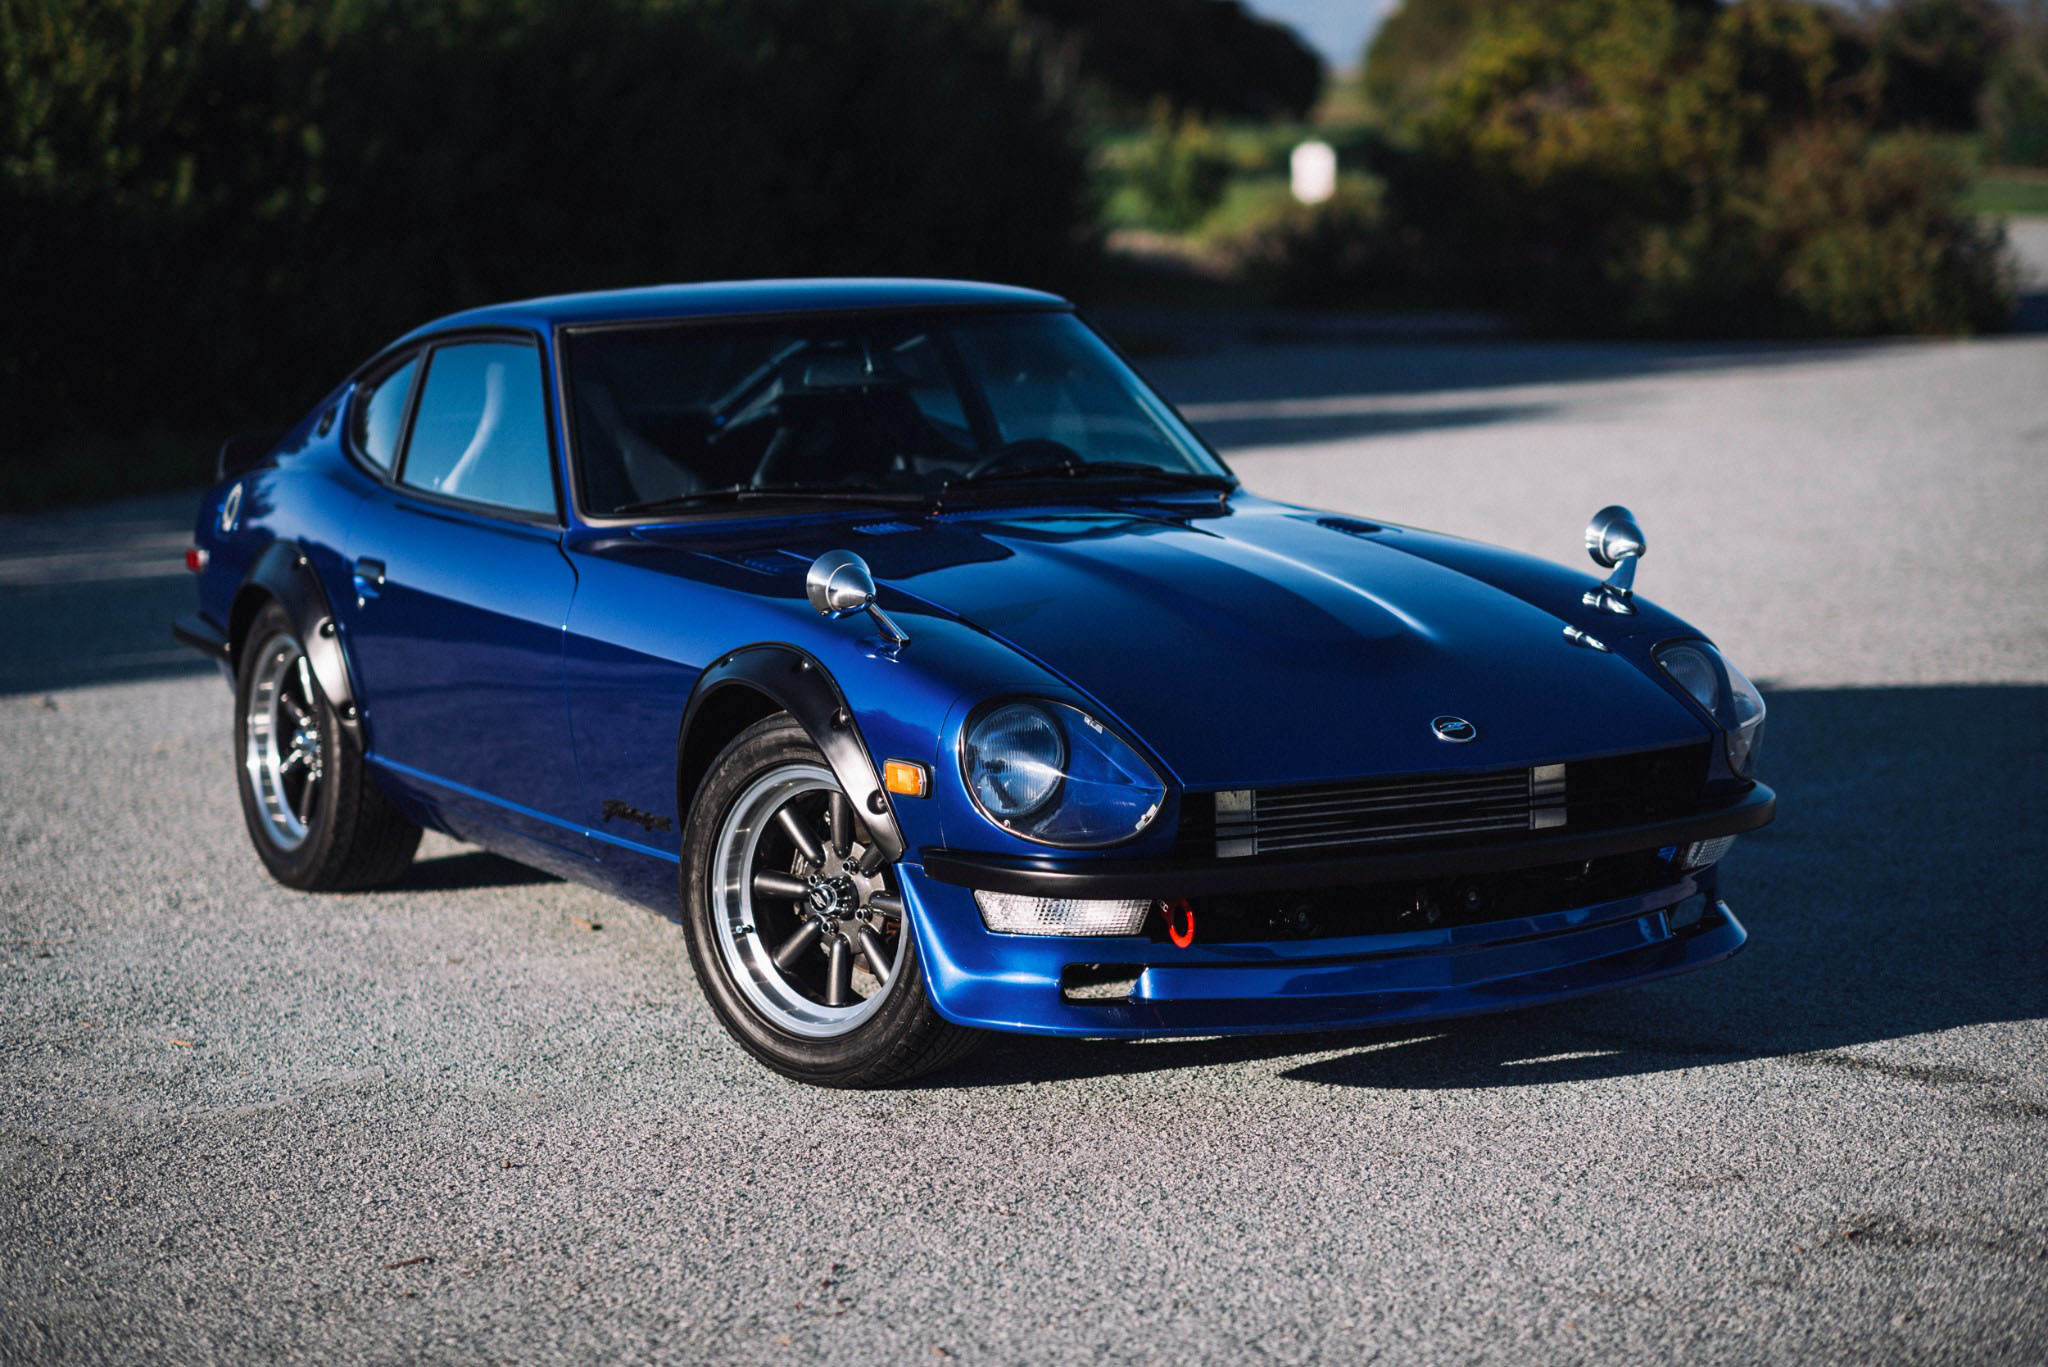 For Sale: 1973 Datsun 240Z With A Turbo L28